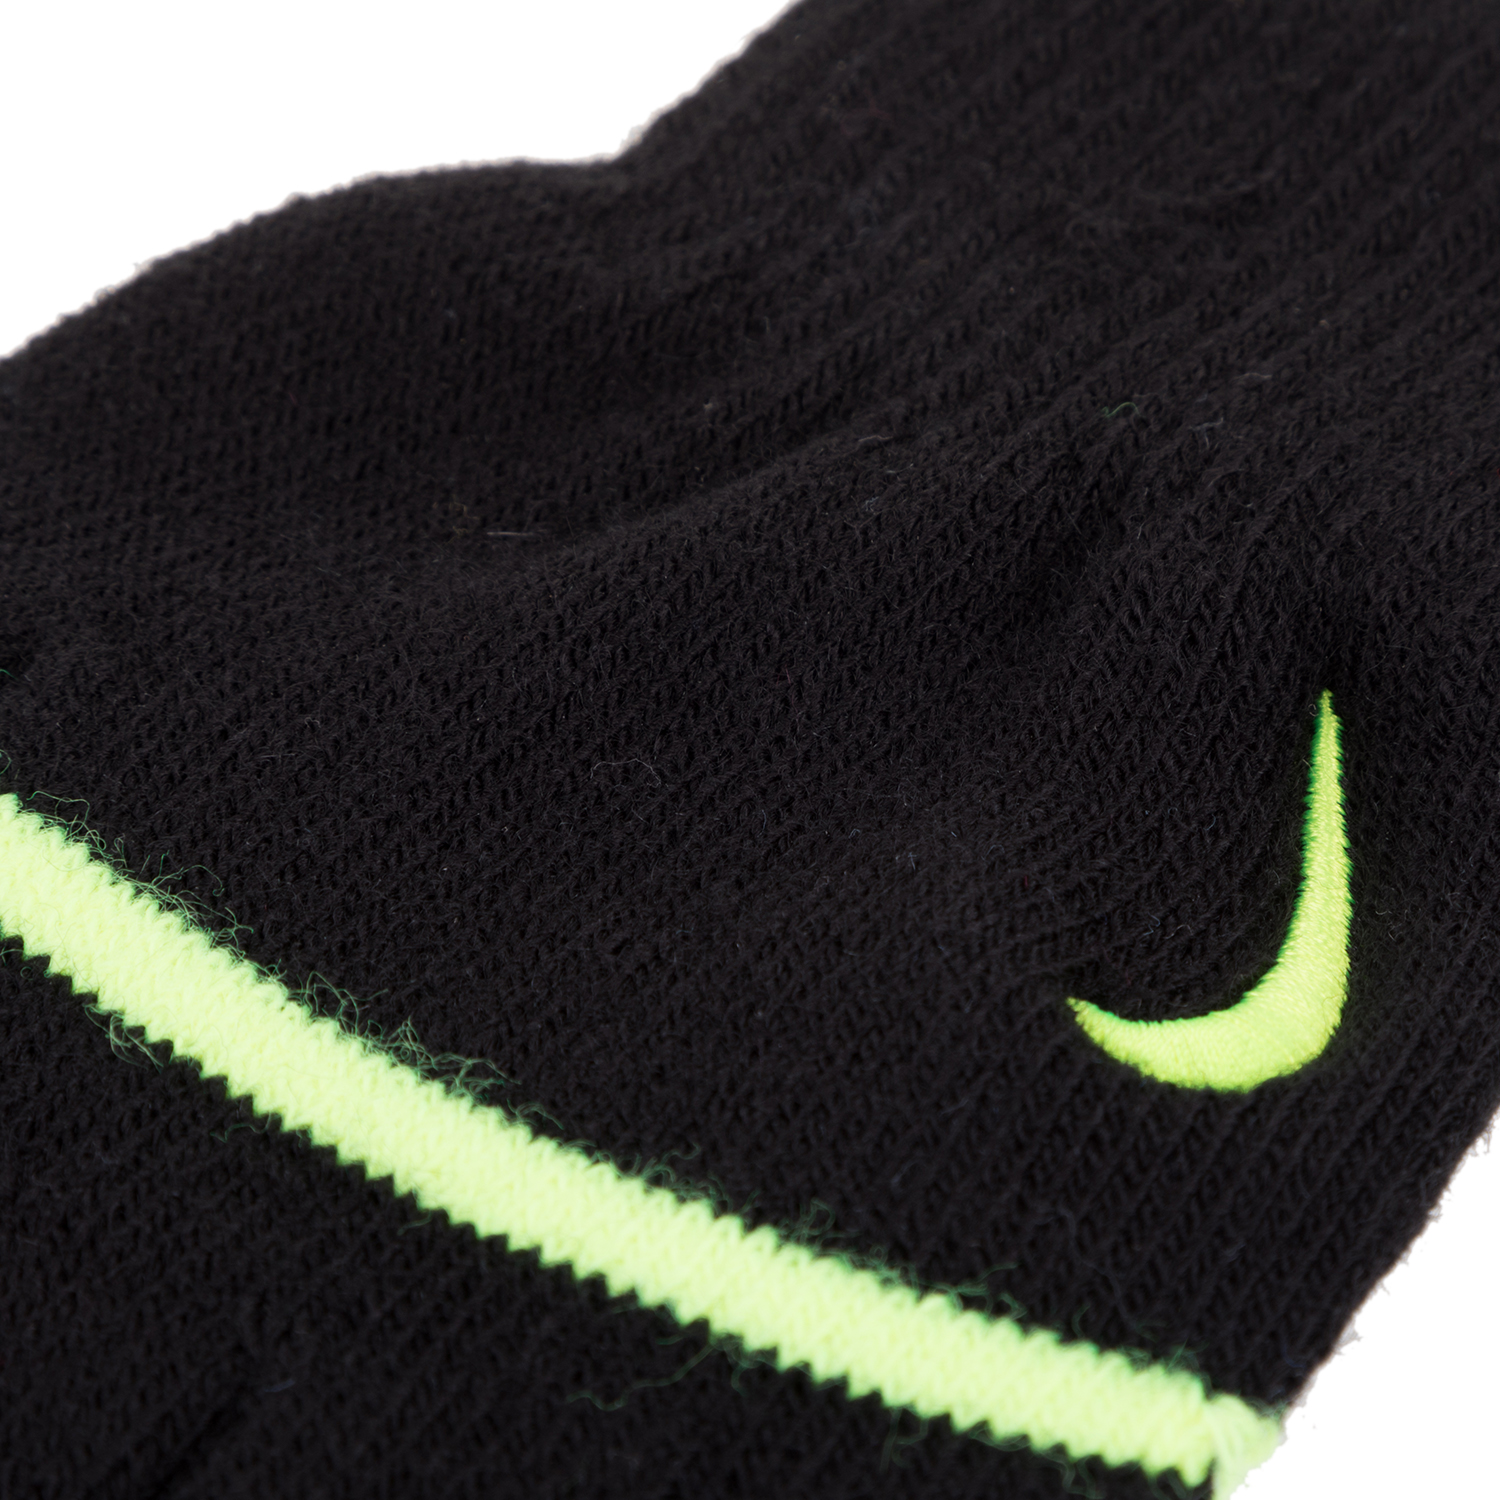 f19c5ebdc40d NIKE ACCESSORIES - Unisex παιδικά γάντια NIKE YA STRIPE KNITTED TECH μαύρα